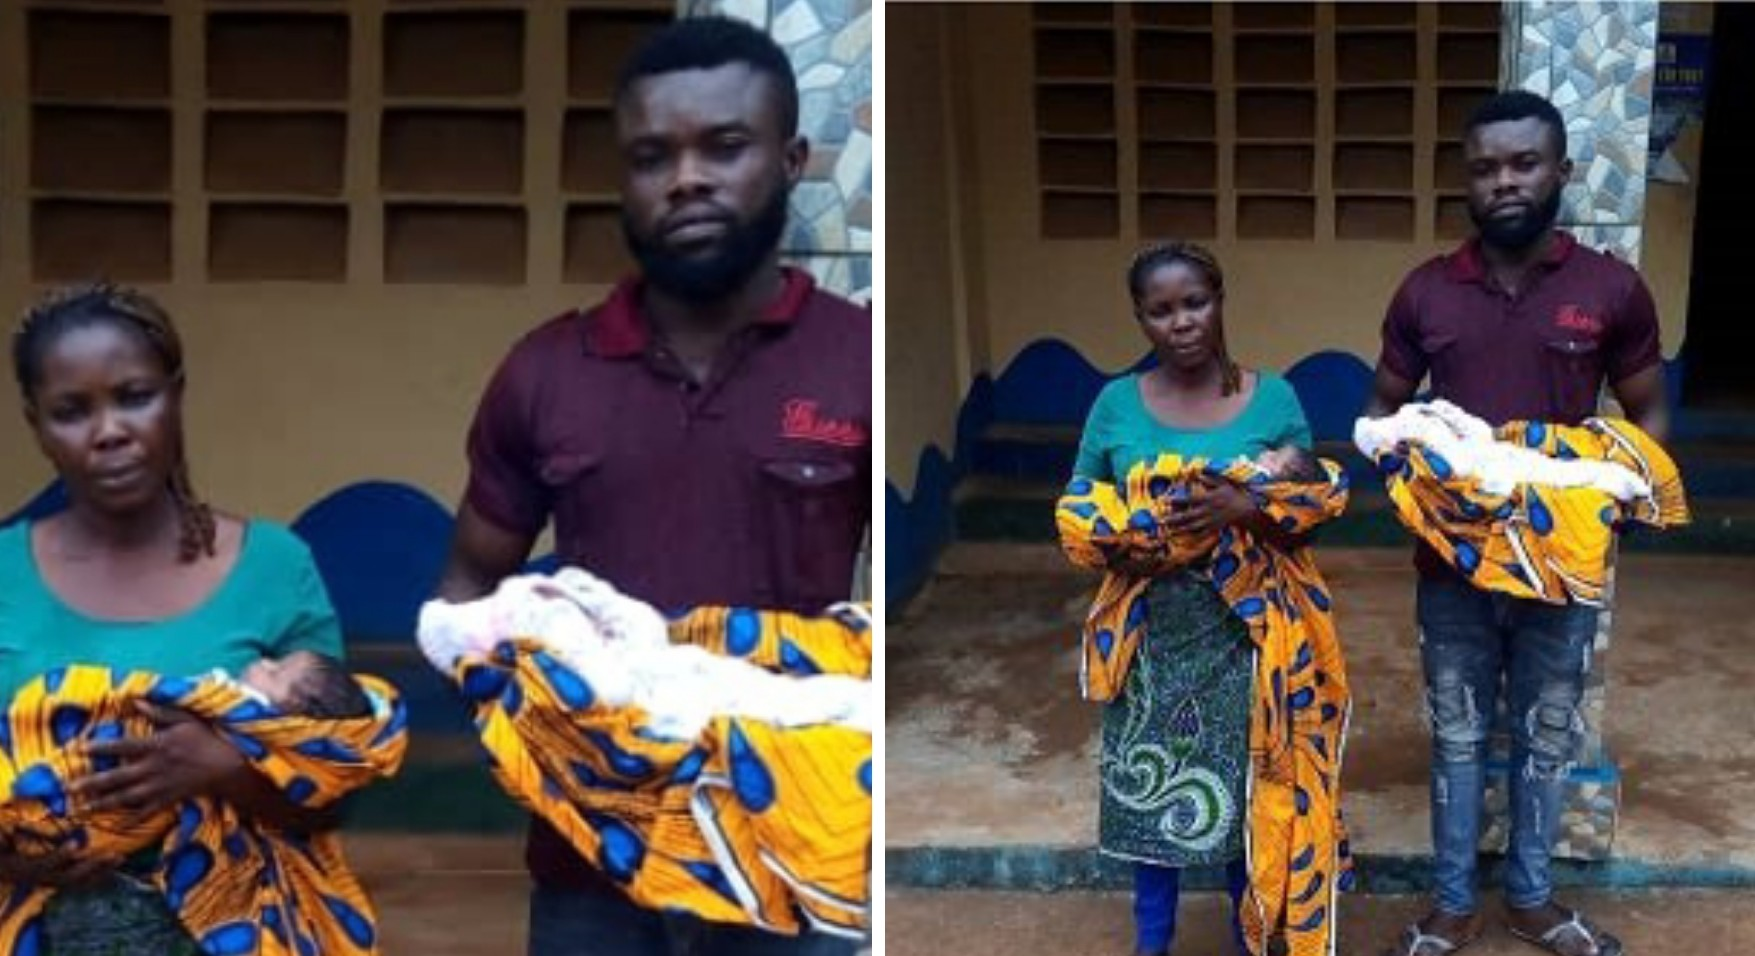 Man lures ex-girlfriend he impregnated, sells her twins for N150,000 in Anambra